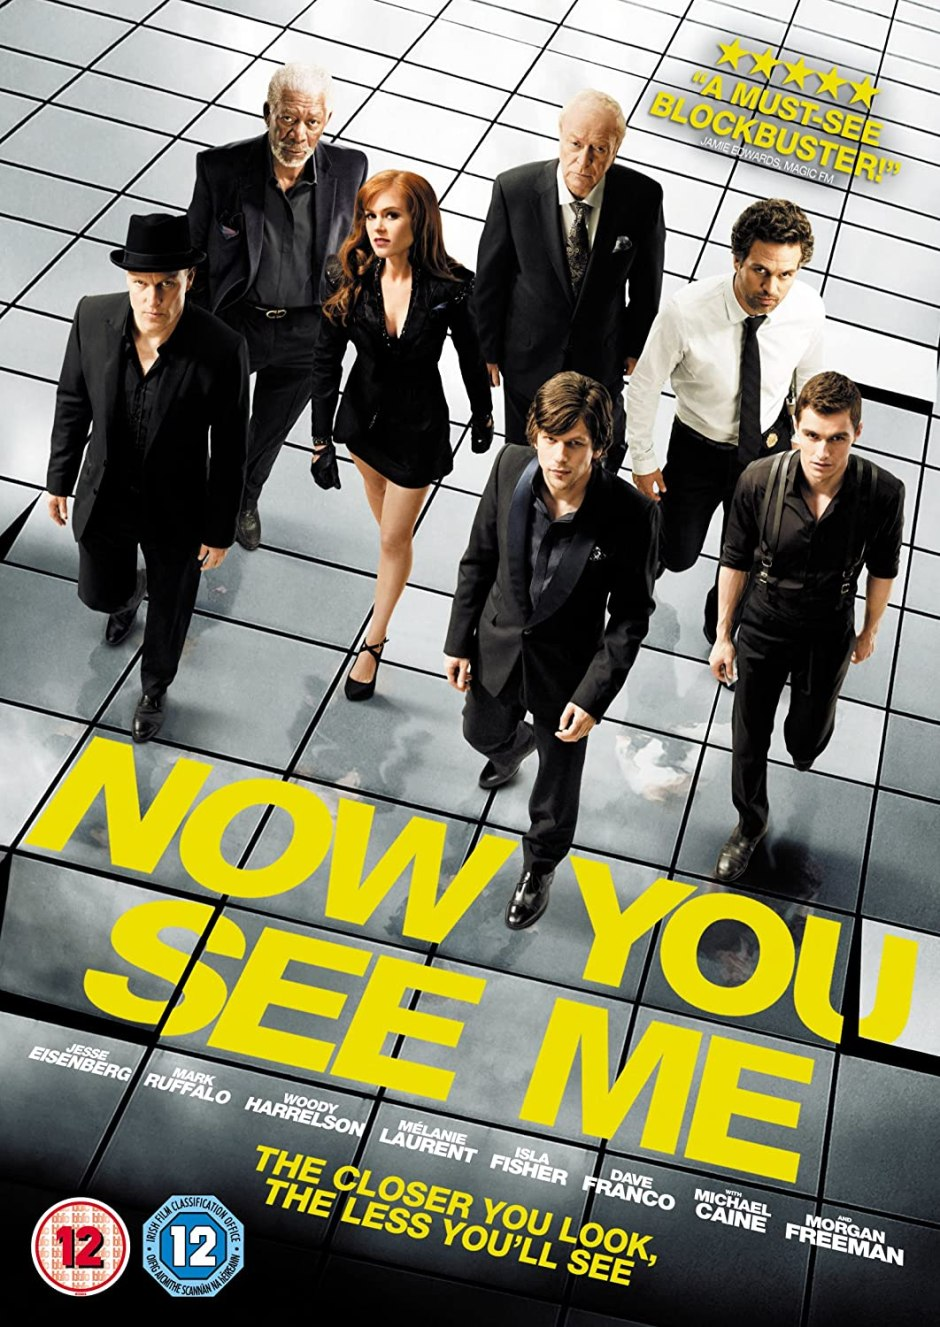 DVD: Now You See Me